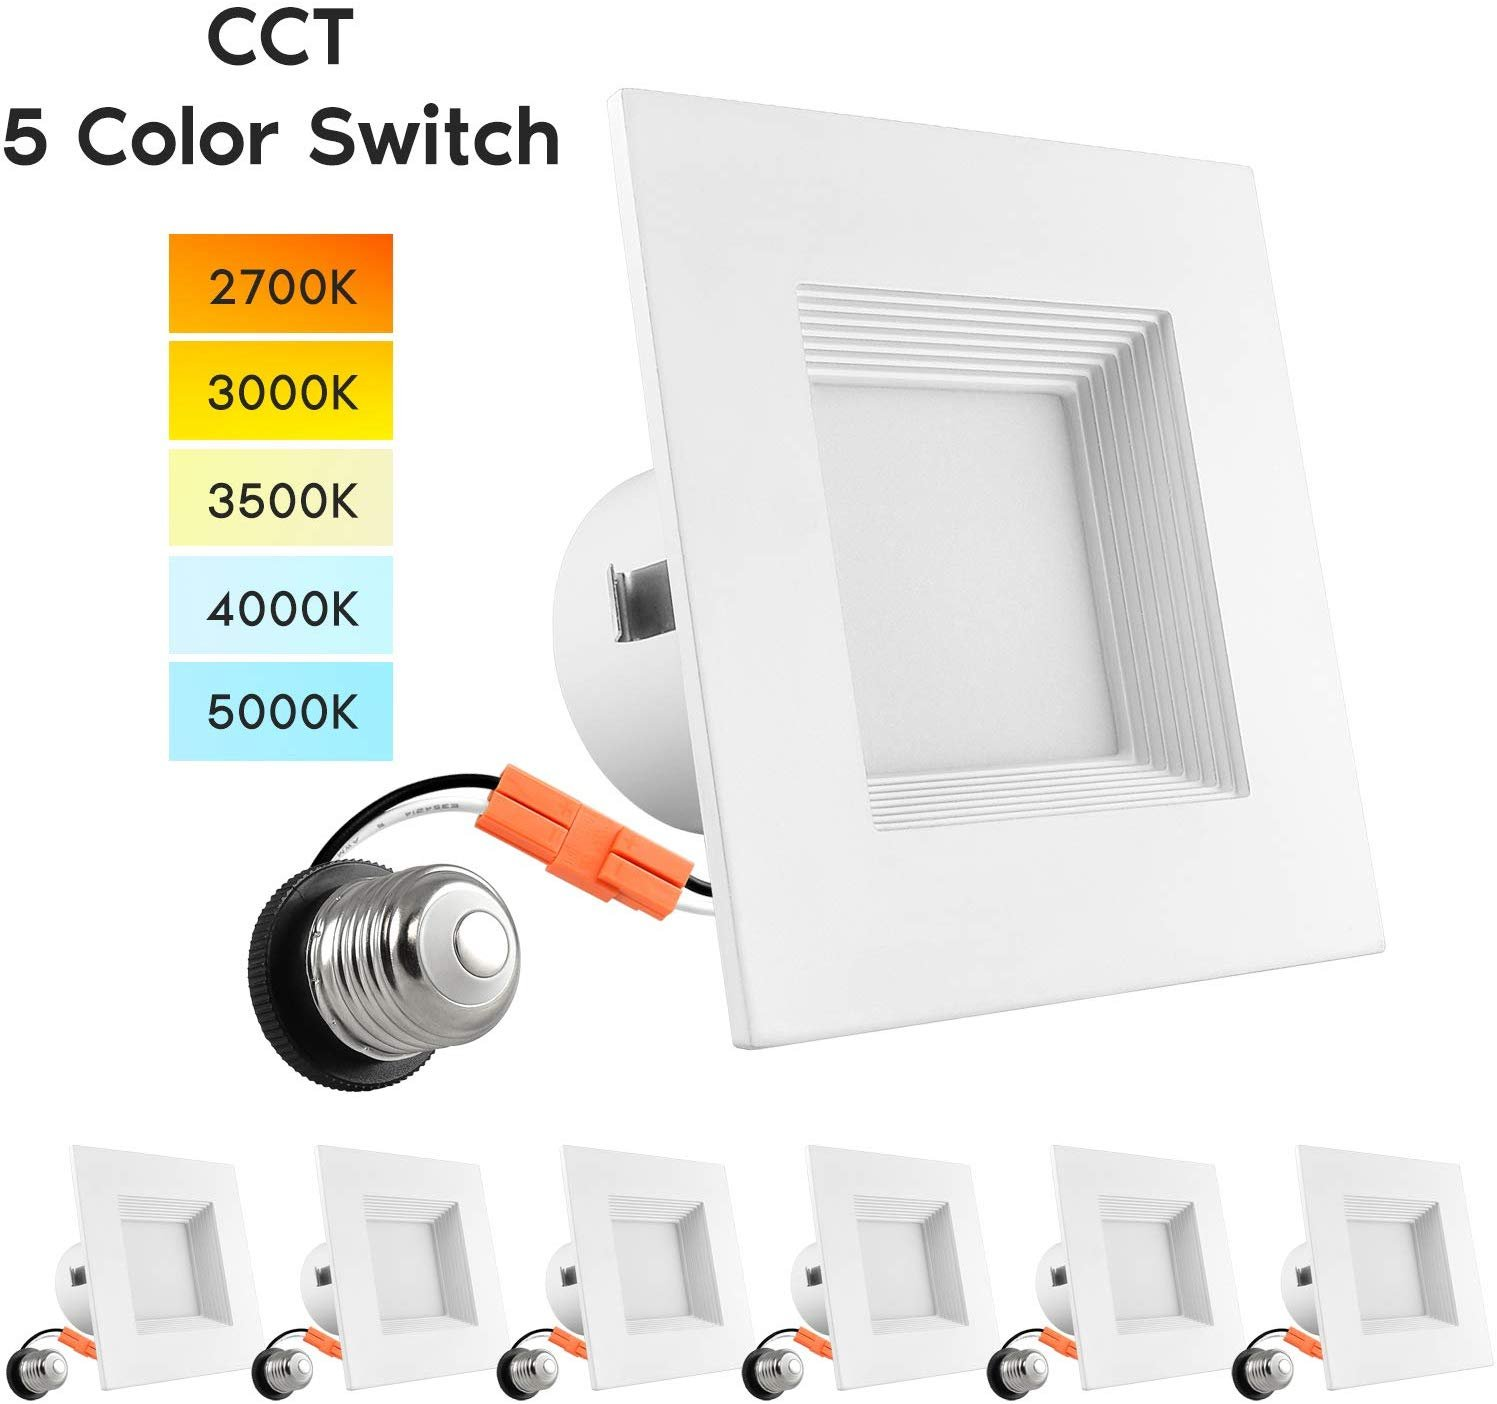 luxrite 4 square recessed led can lights 5 color selectable dimmable 750 lumens wet rated baffle trim 6 pack walmart com